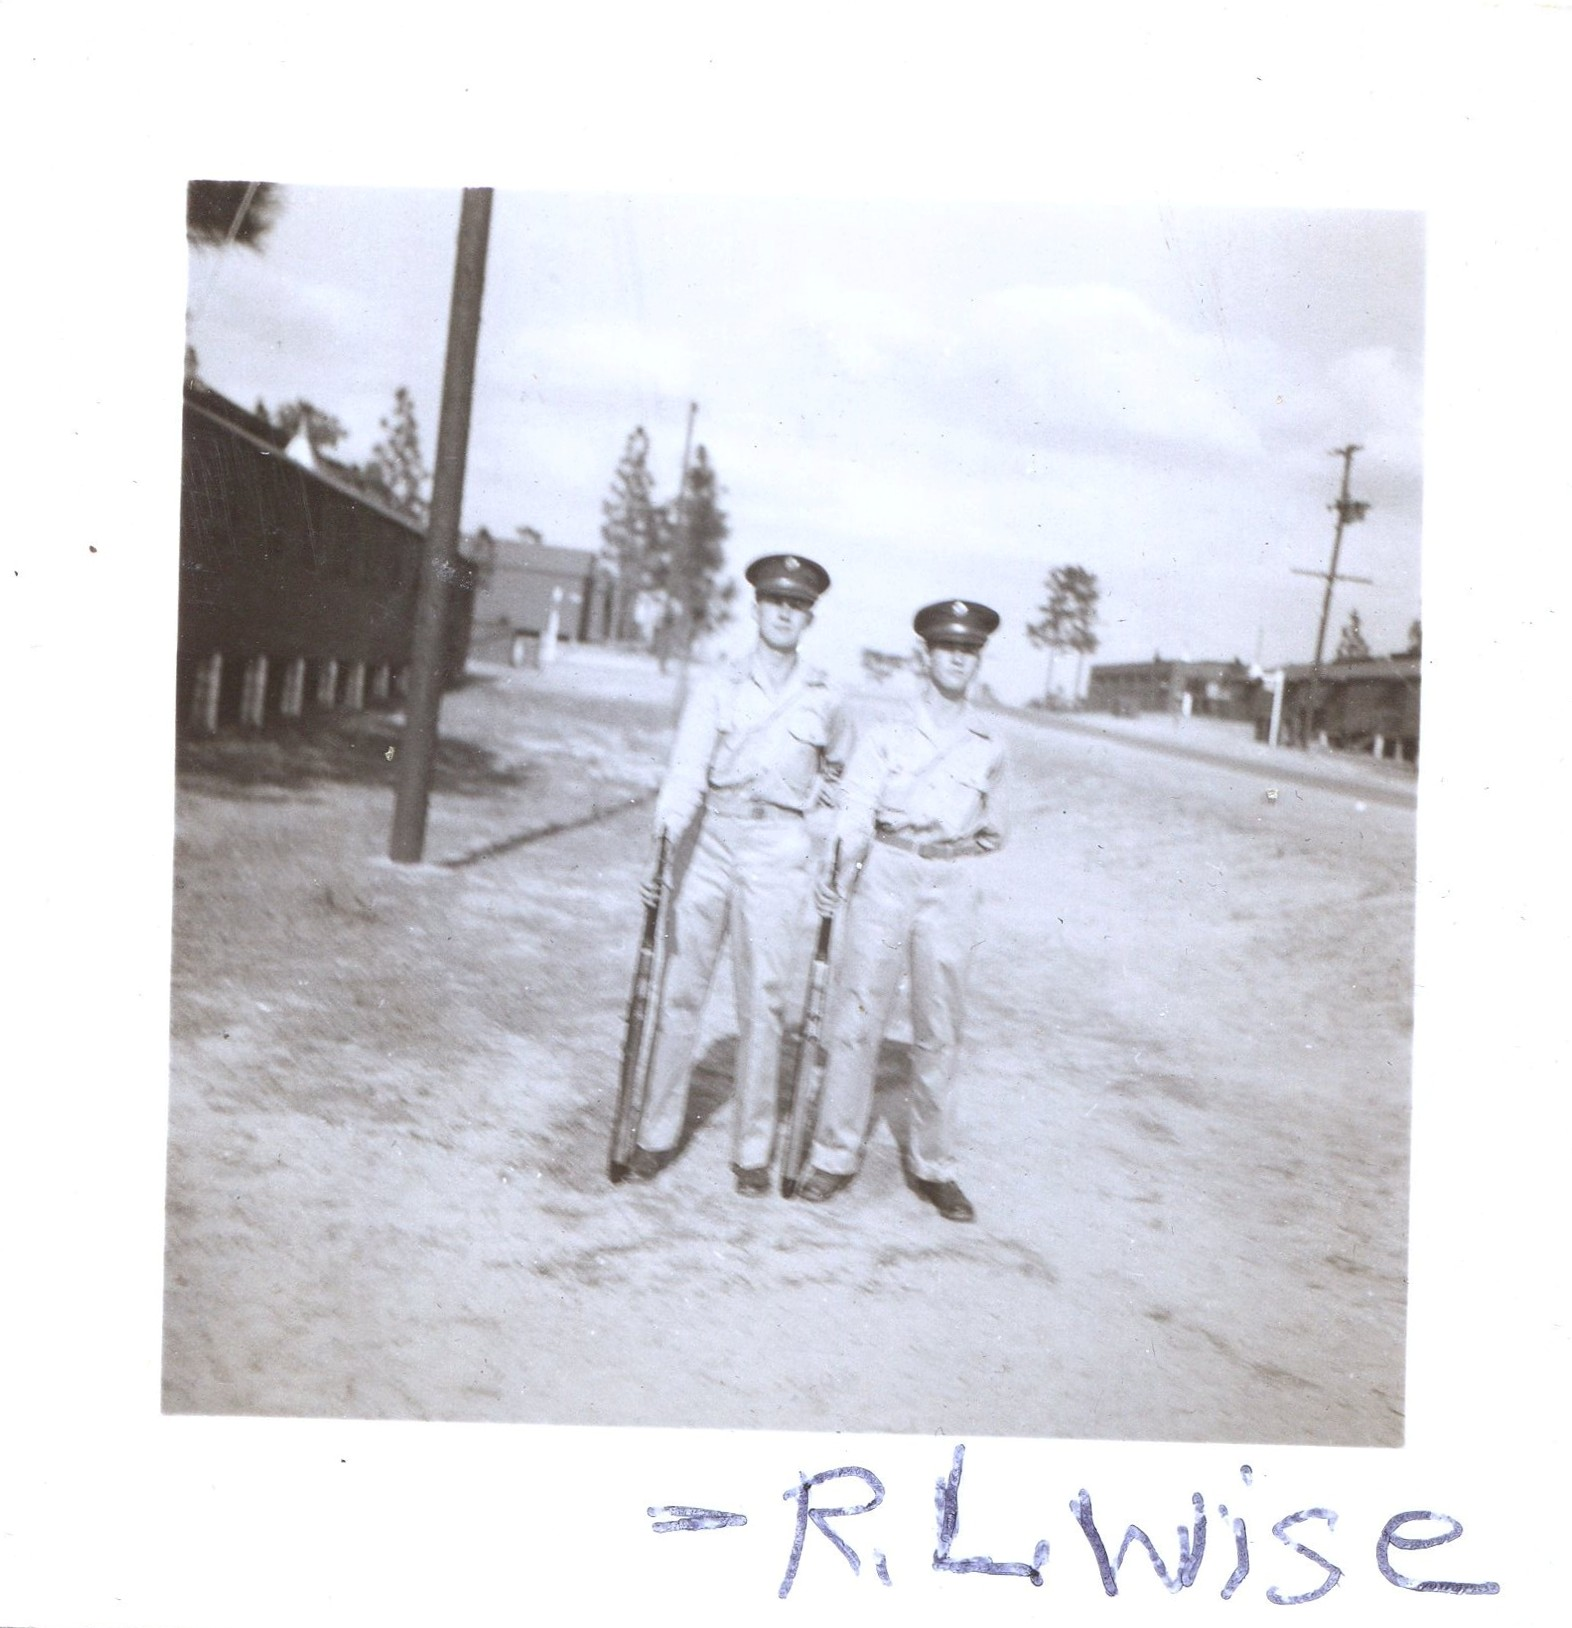 Richard Wise on Right